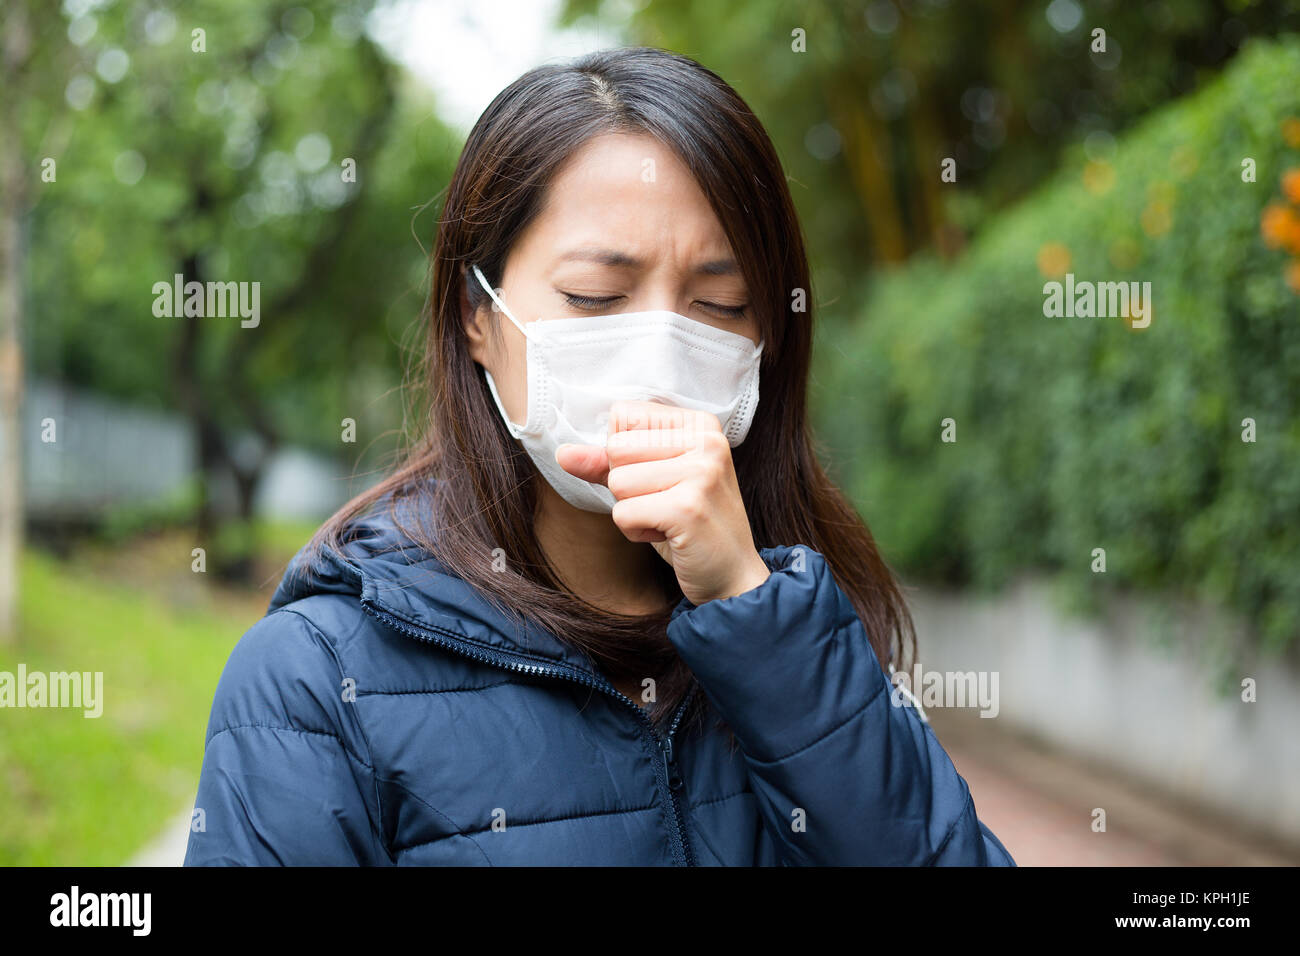 Young Woman wearing face mask - Stock Image